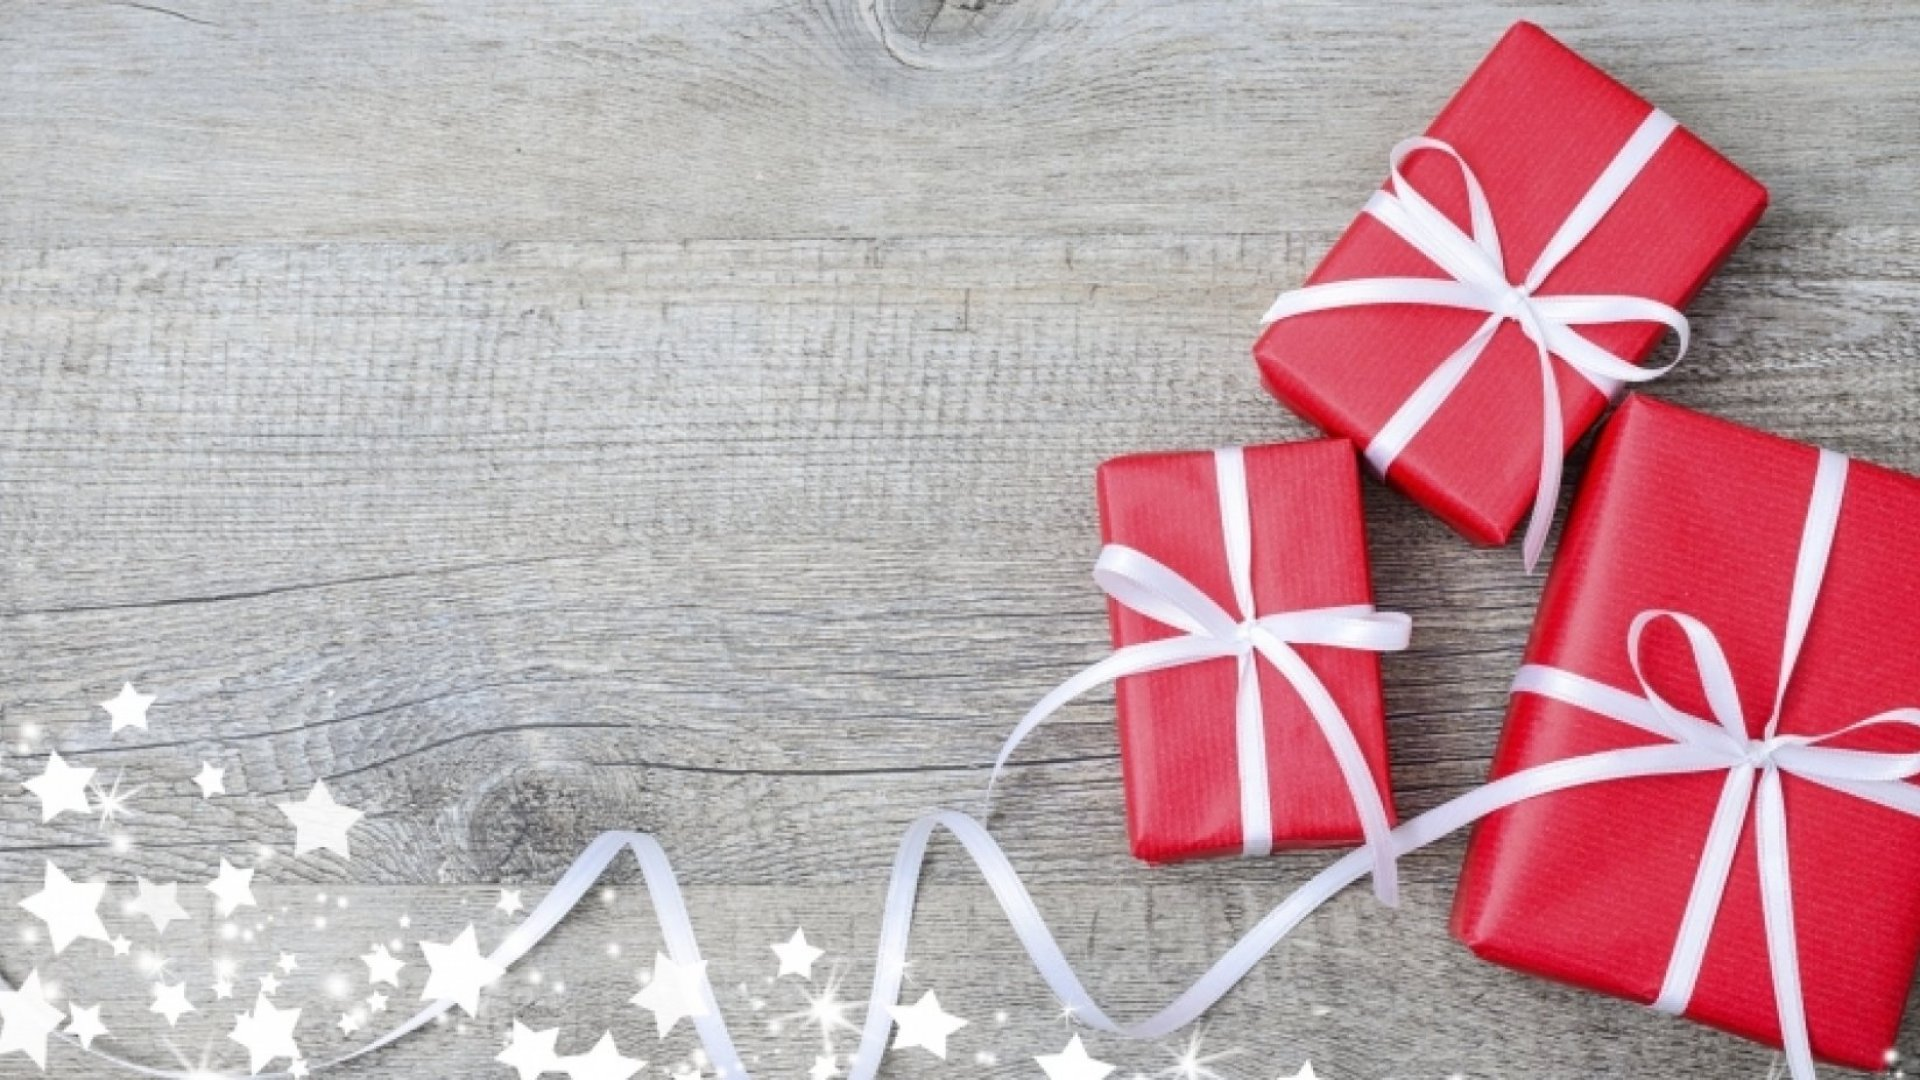 10 Ways to Thank Your Key Leaders During the Holiday Season